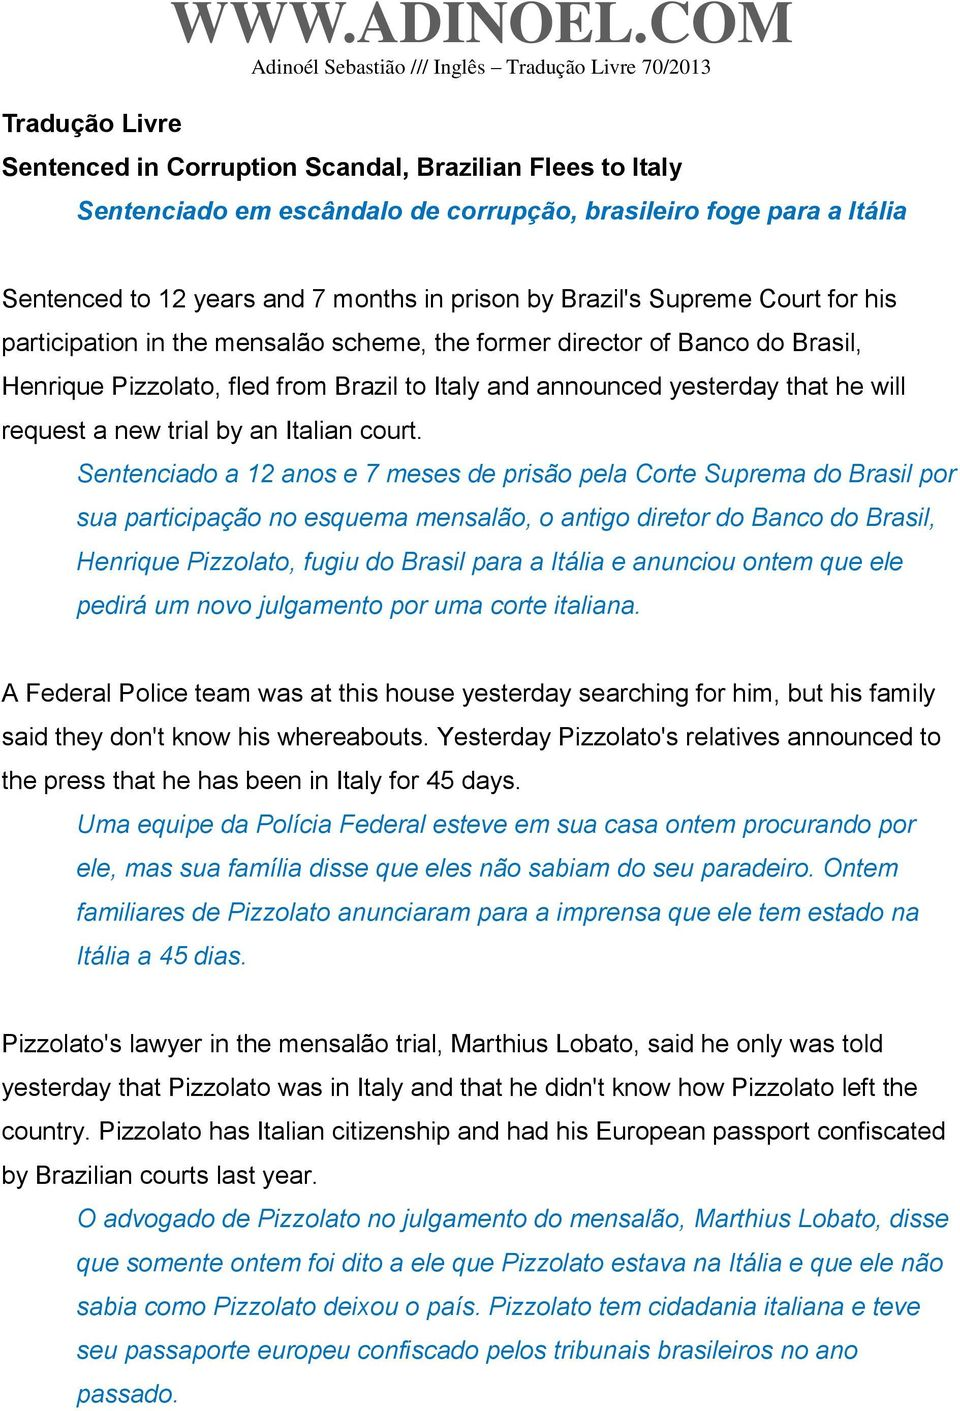 Court for his participation in the mensalão scheme, the former director of Banco do Brasil, Henrique Pizzolato, fled from Brazil to Italy and announced yesterday that he will request a new trial by